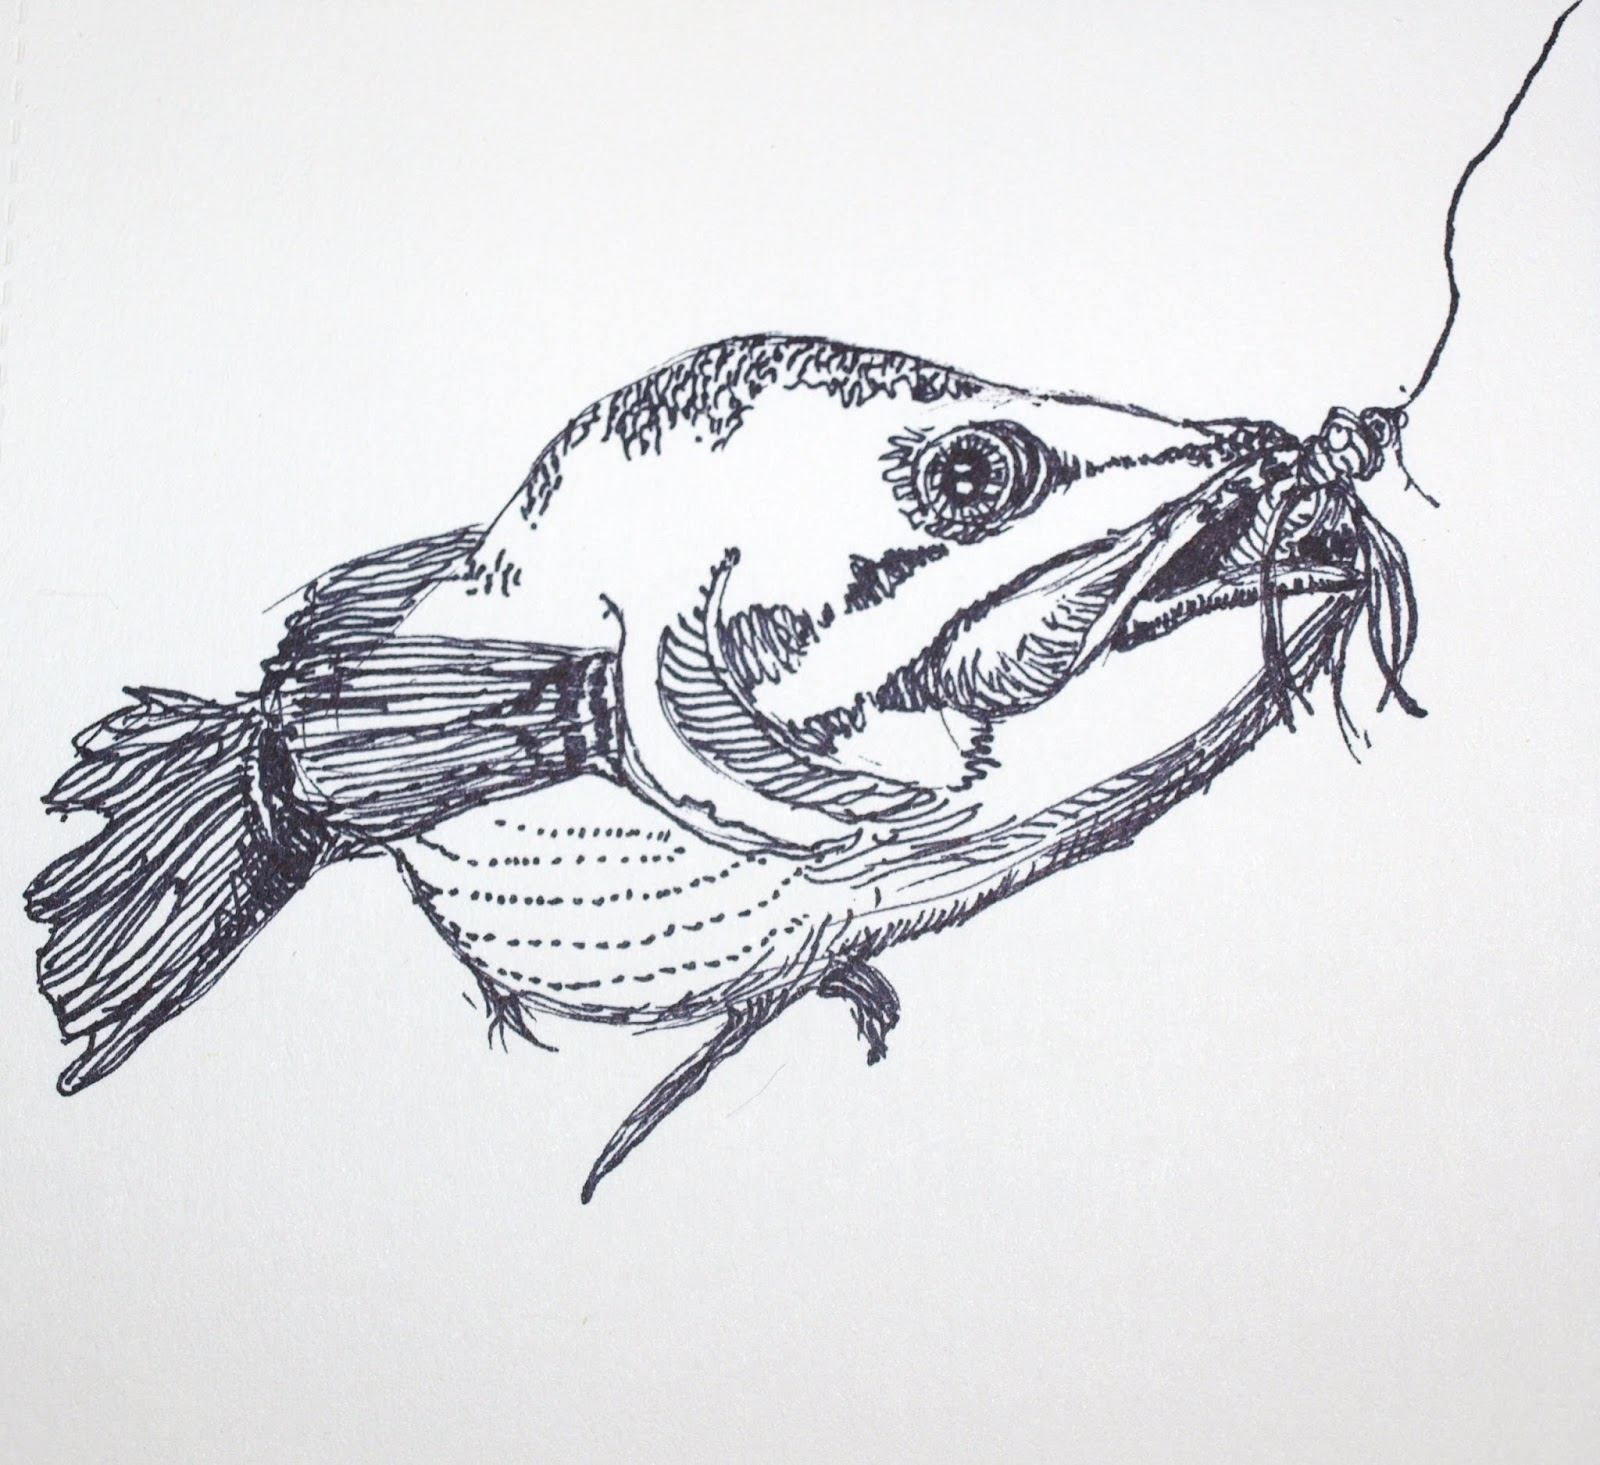 This is an image of Nerdy Realistic Fish Drawing